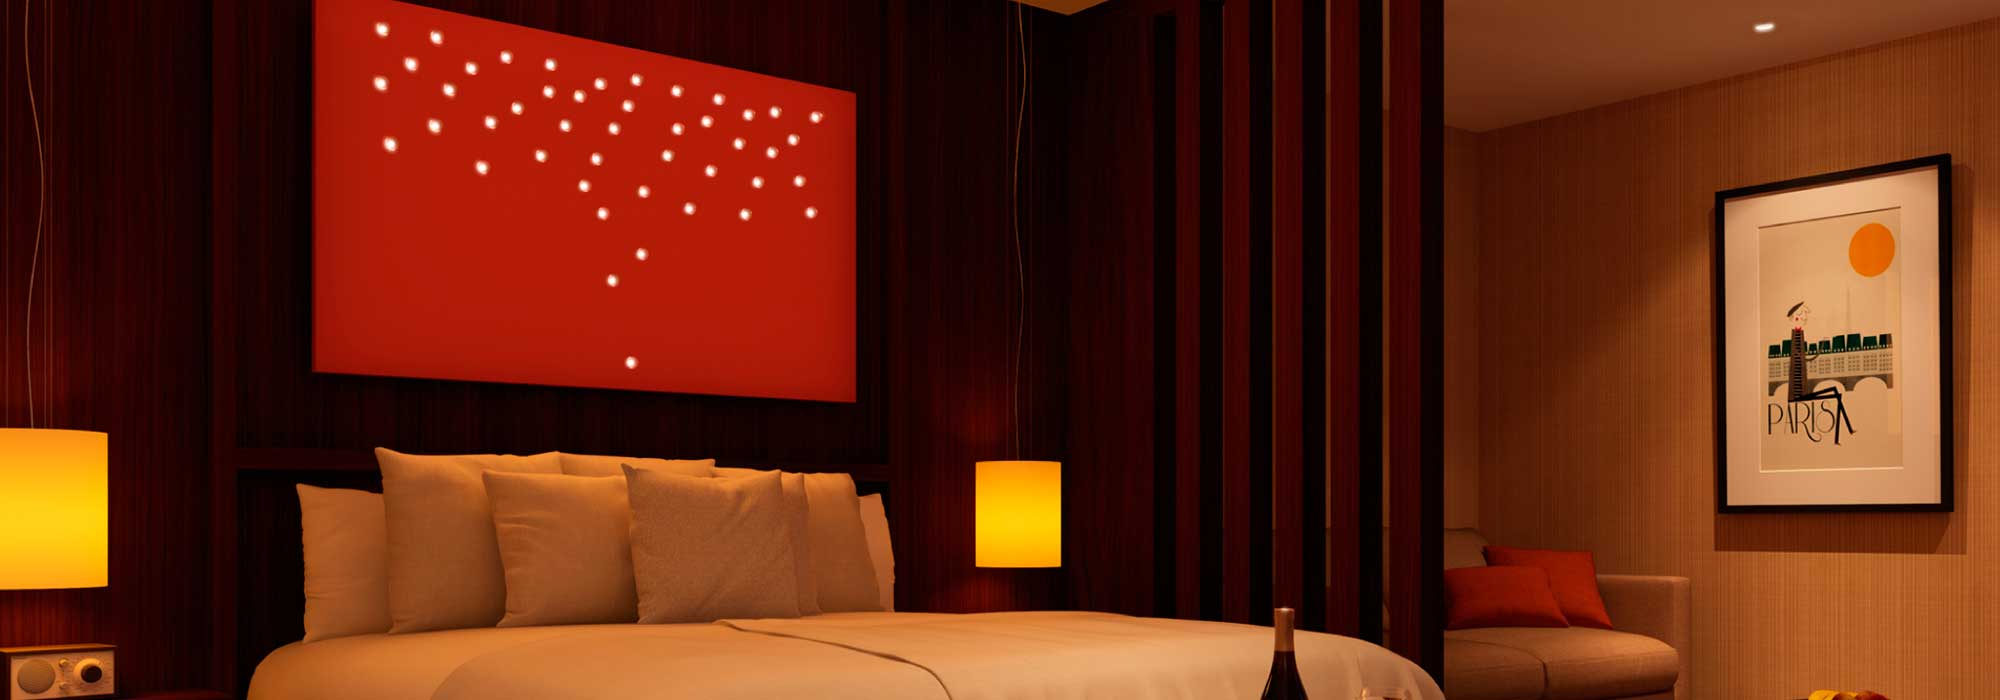 Philips Luminous Patterns - creating a cosy atmosphere in a hotel room.